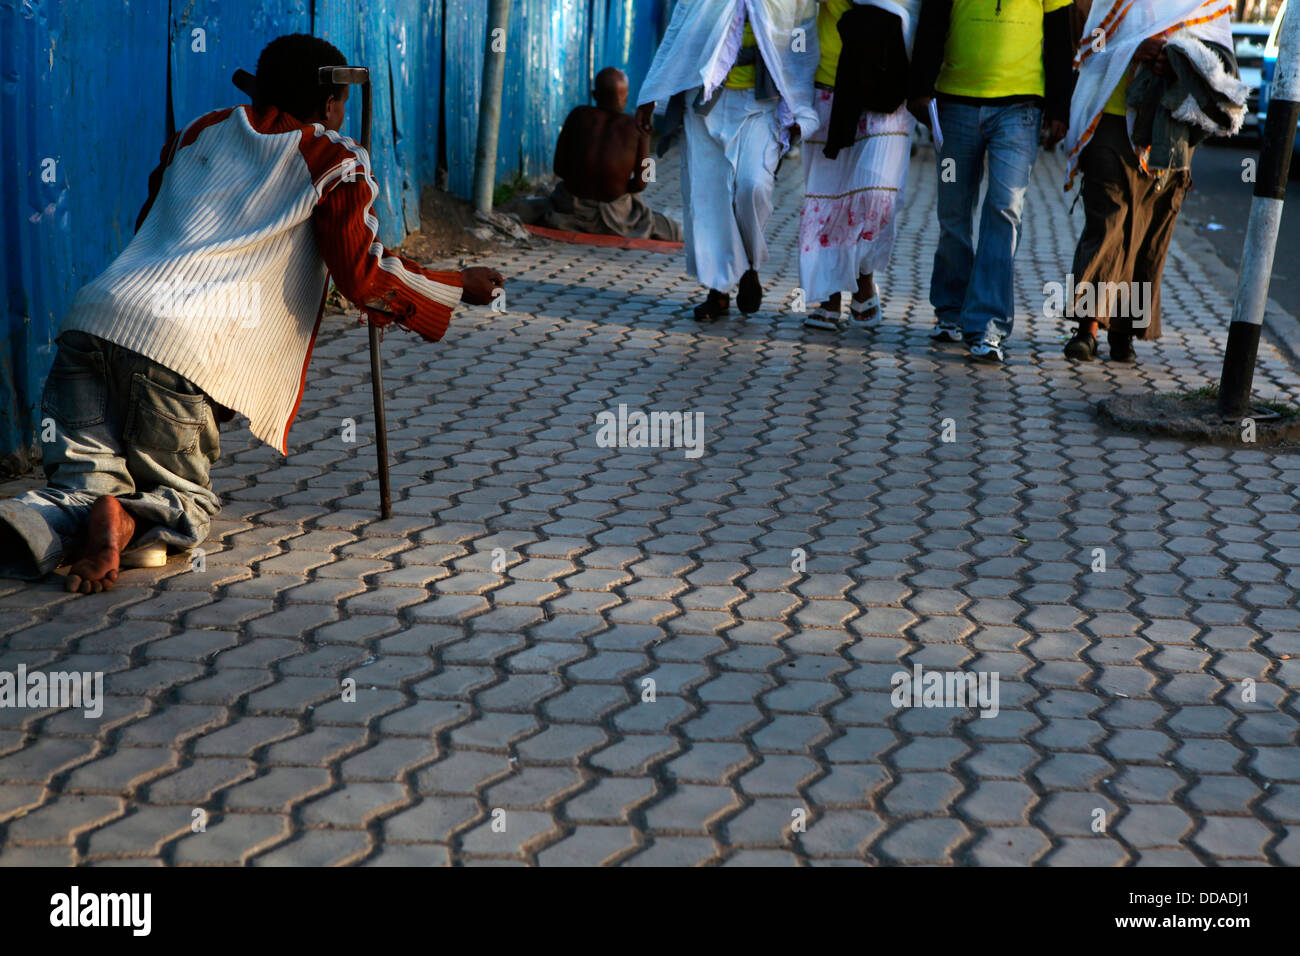 Beggar on the streets of Addis Ababa, Ethiopia. - Stock Image